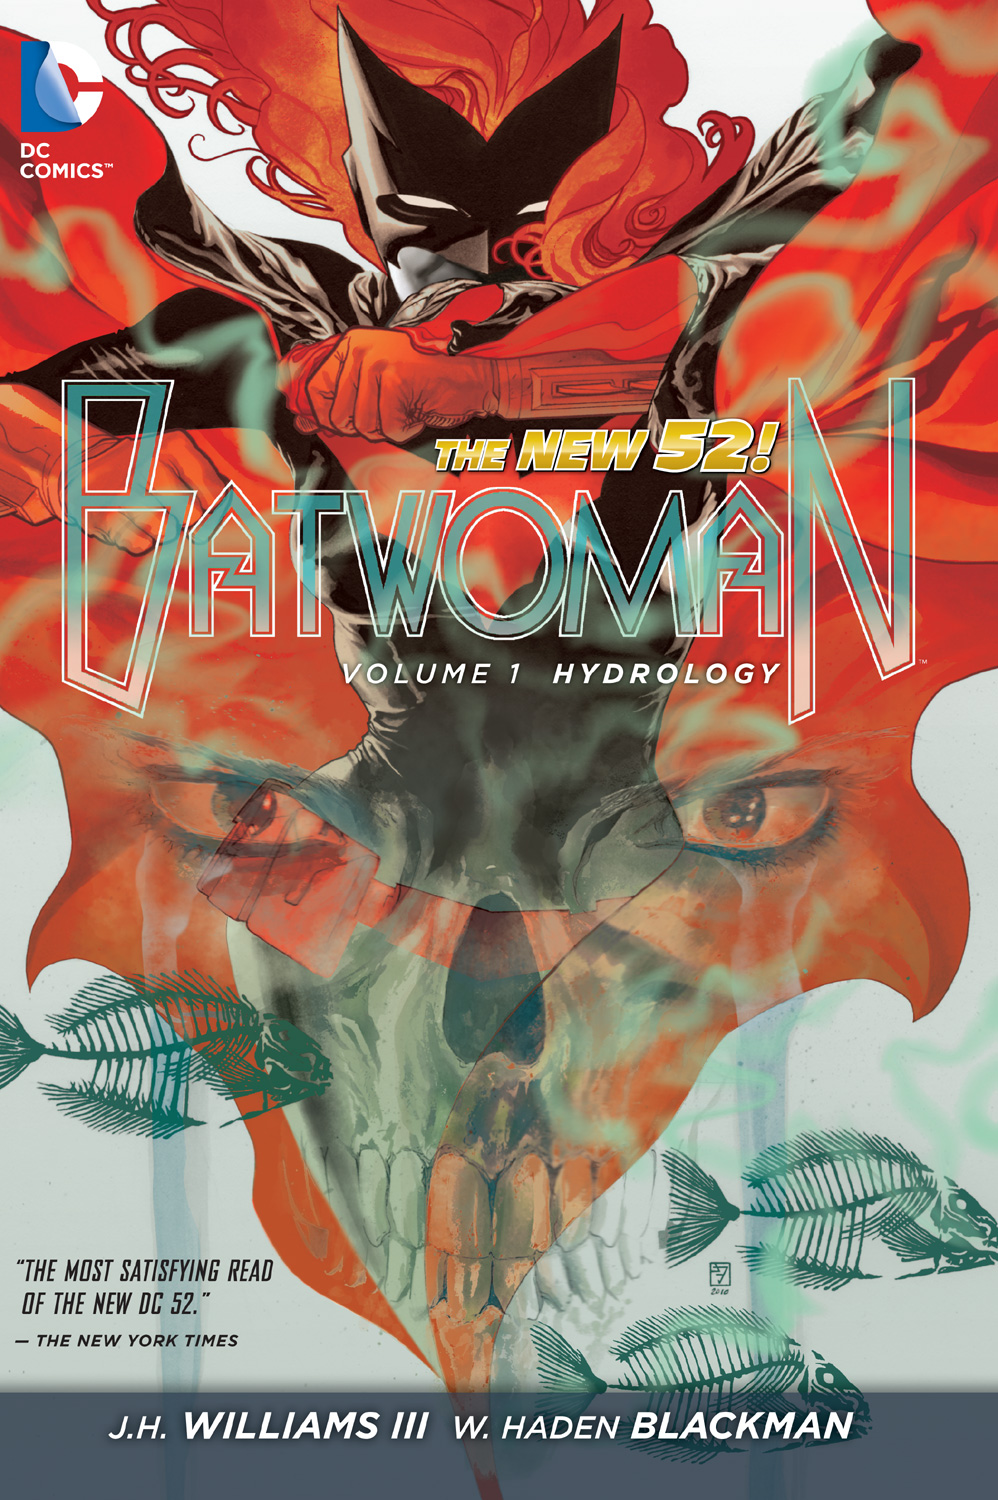 Batwoman: Hydrology, JH Williams III, W. Haden Blackman, Batwoman, Kate Kane